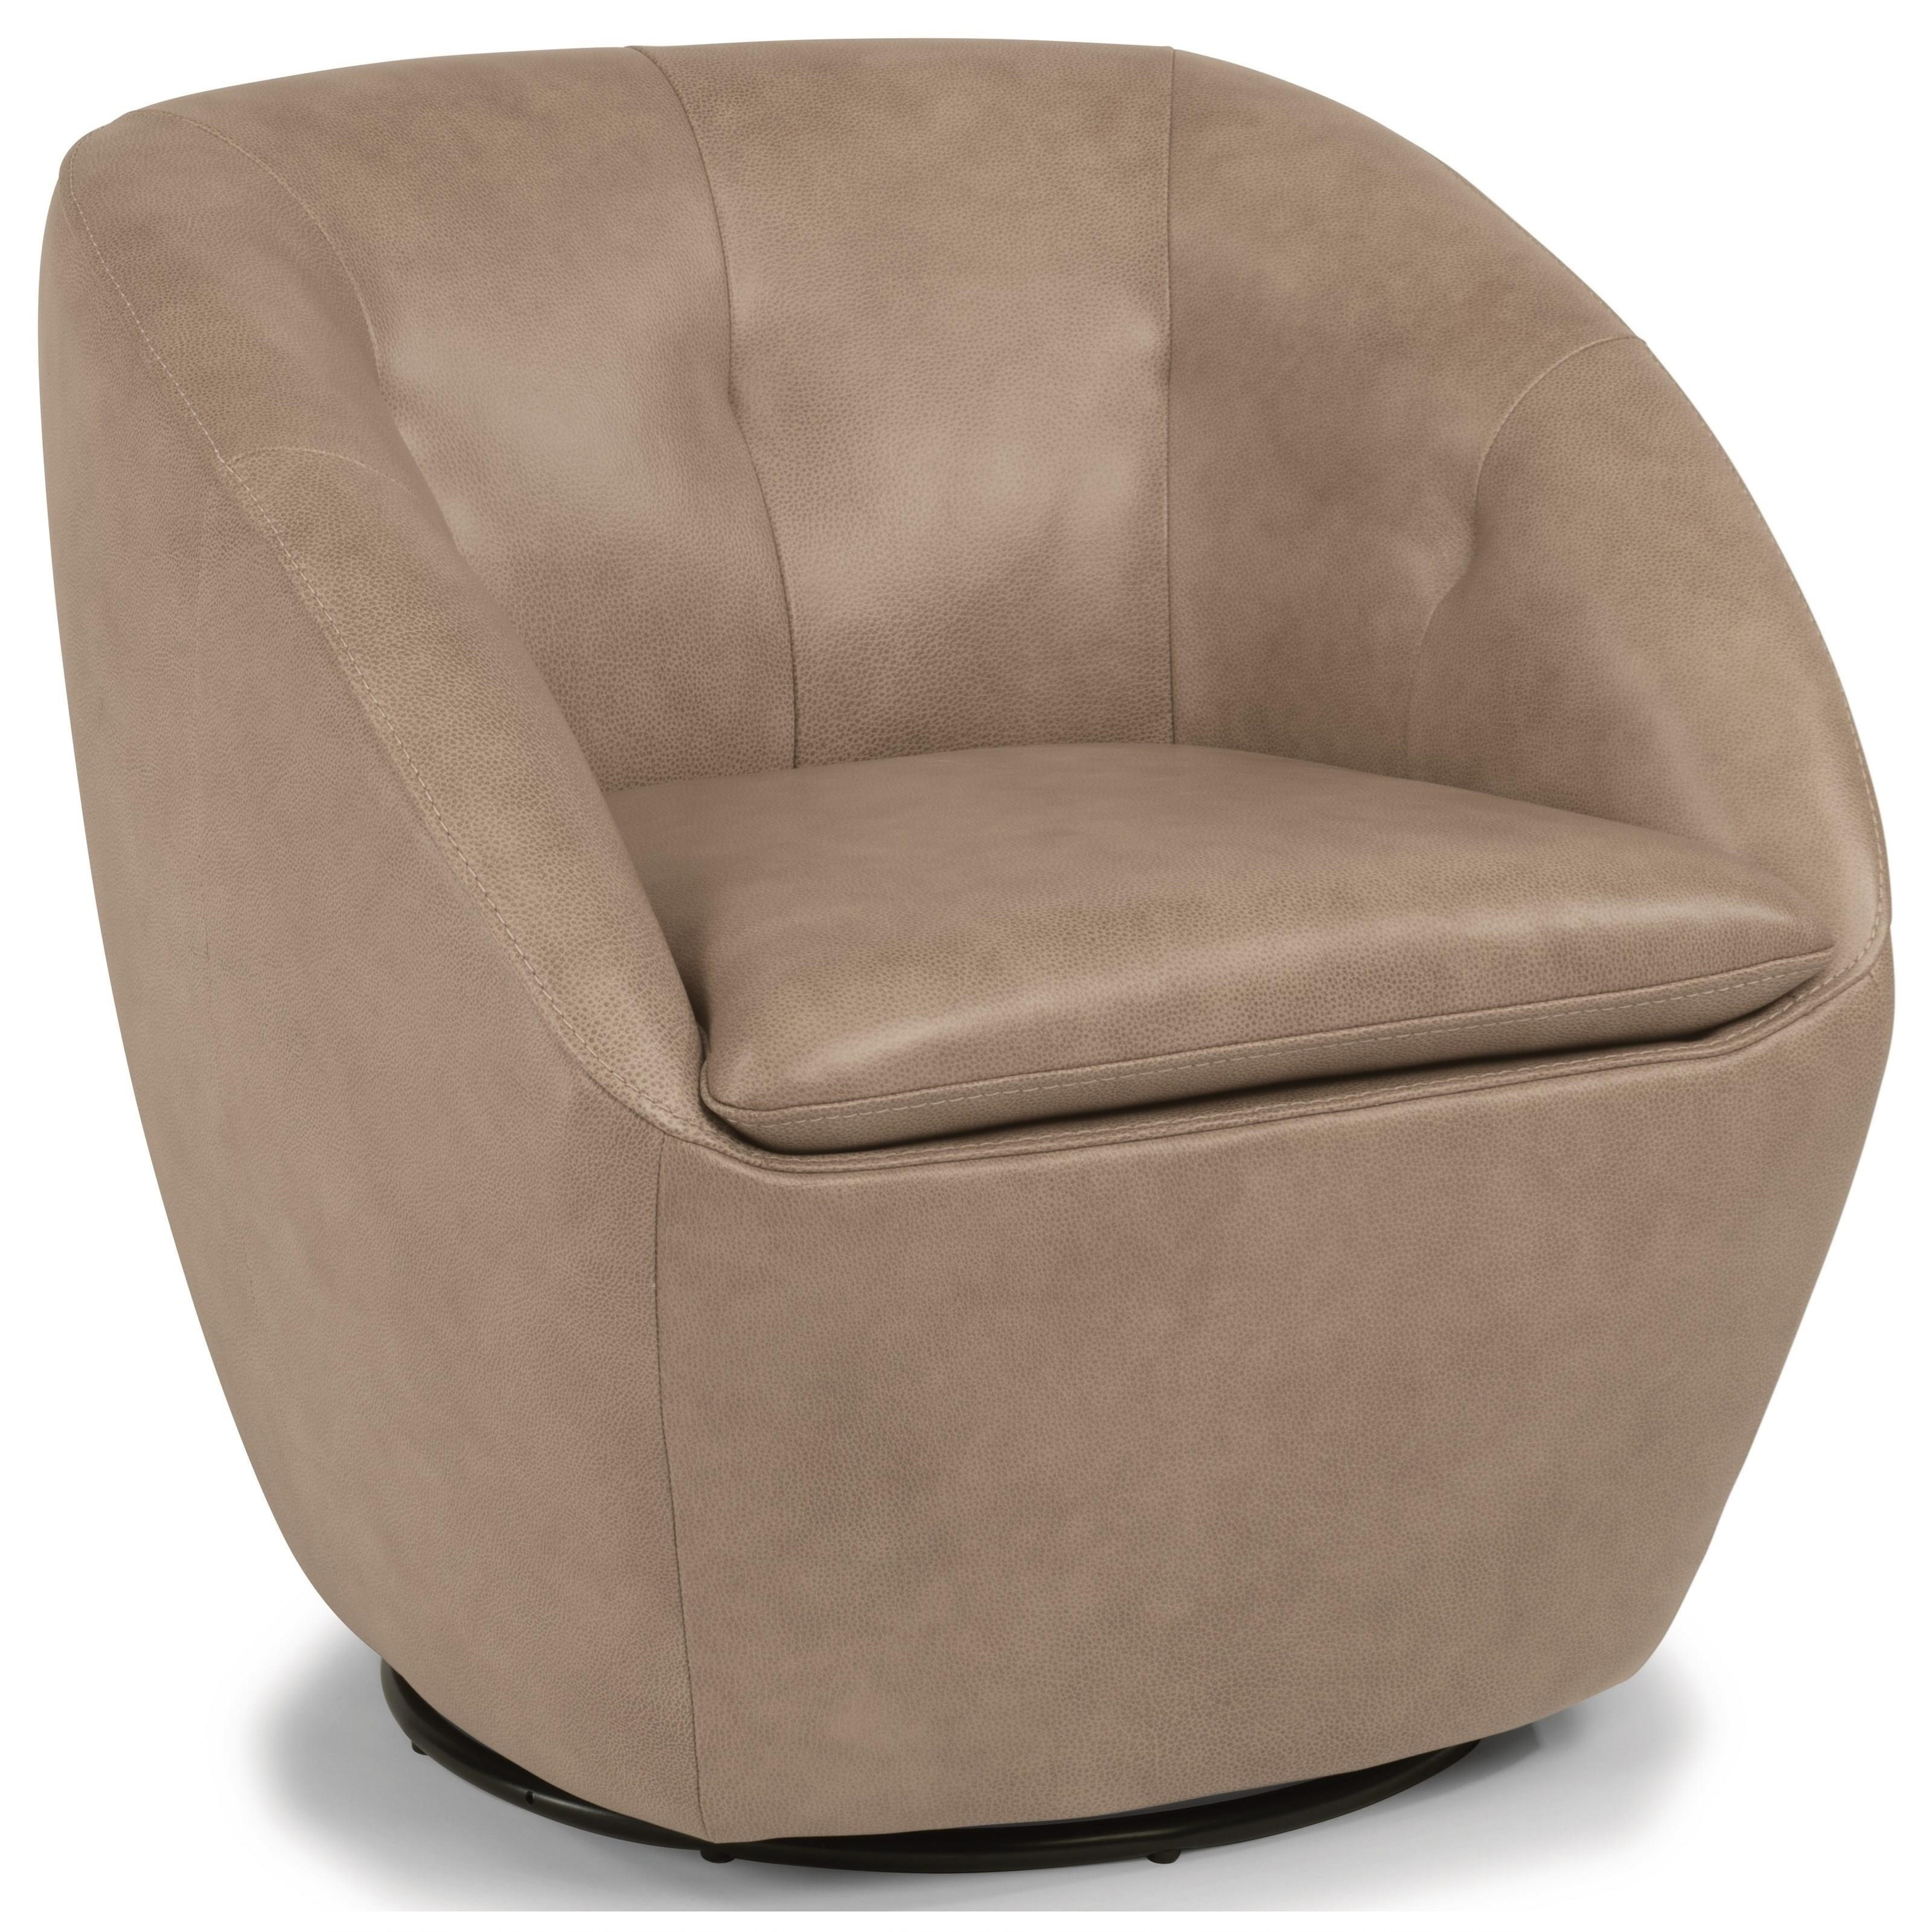 Latitudes - Wade Swivel Chair  by Flexsteel at Steger's Furniture